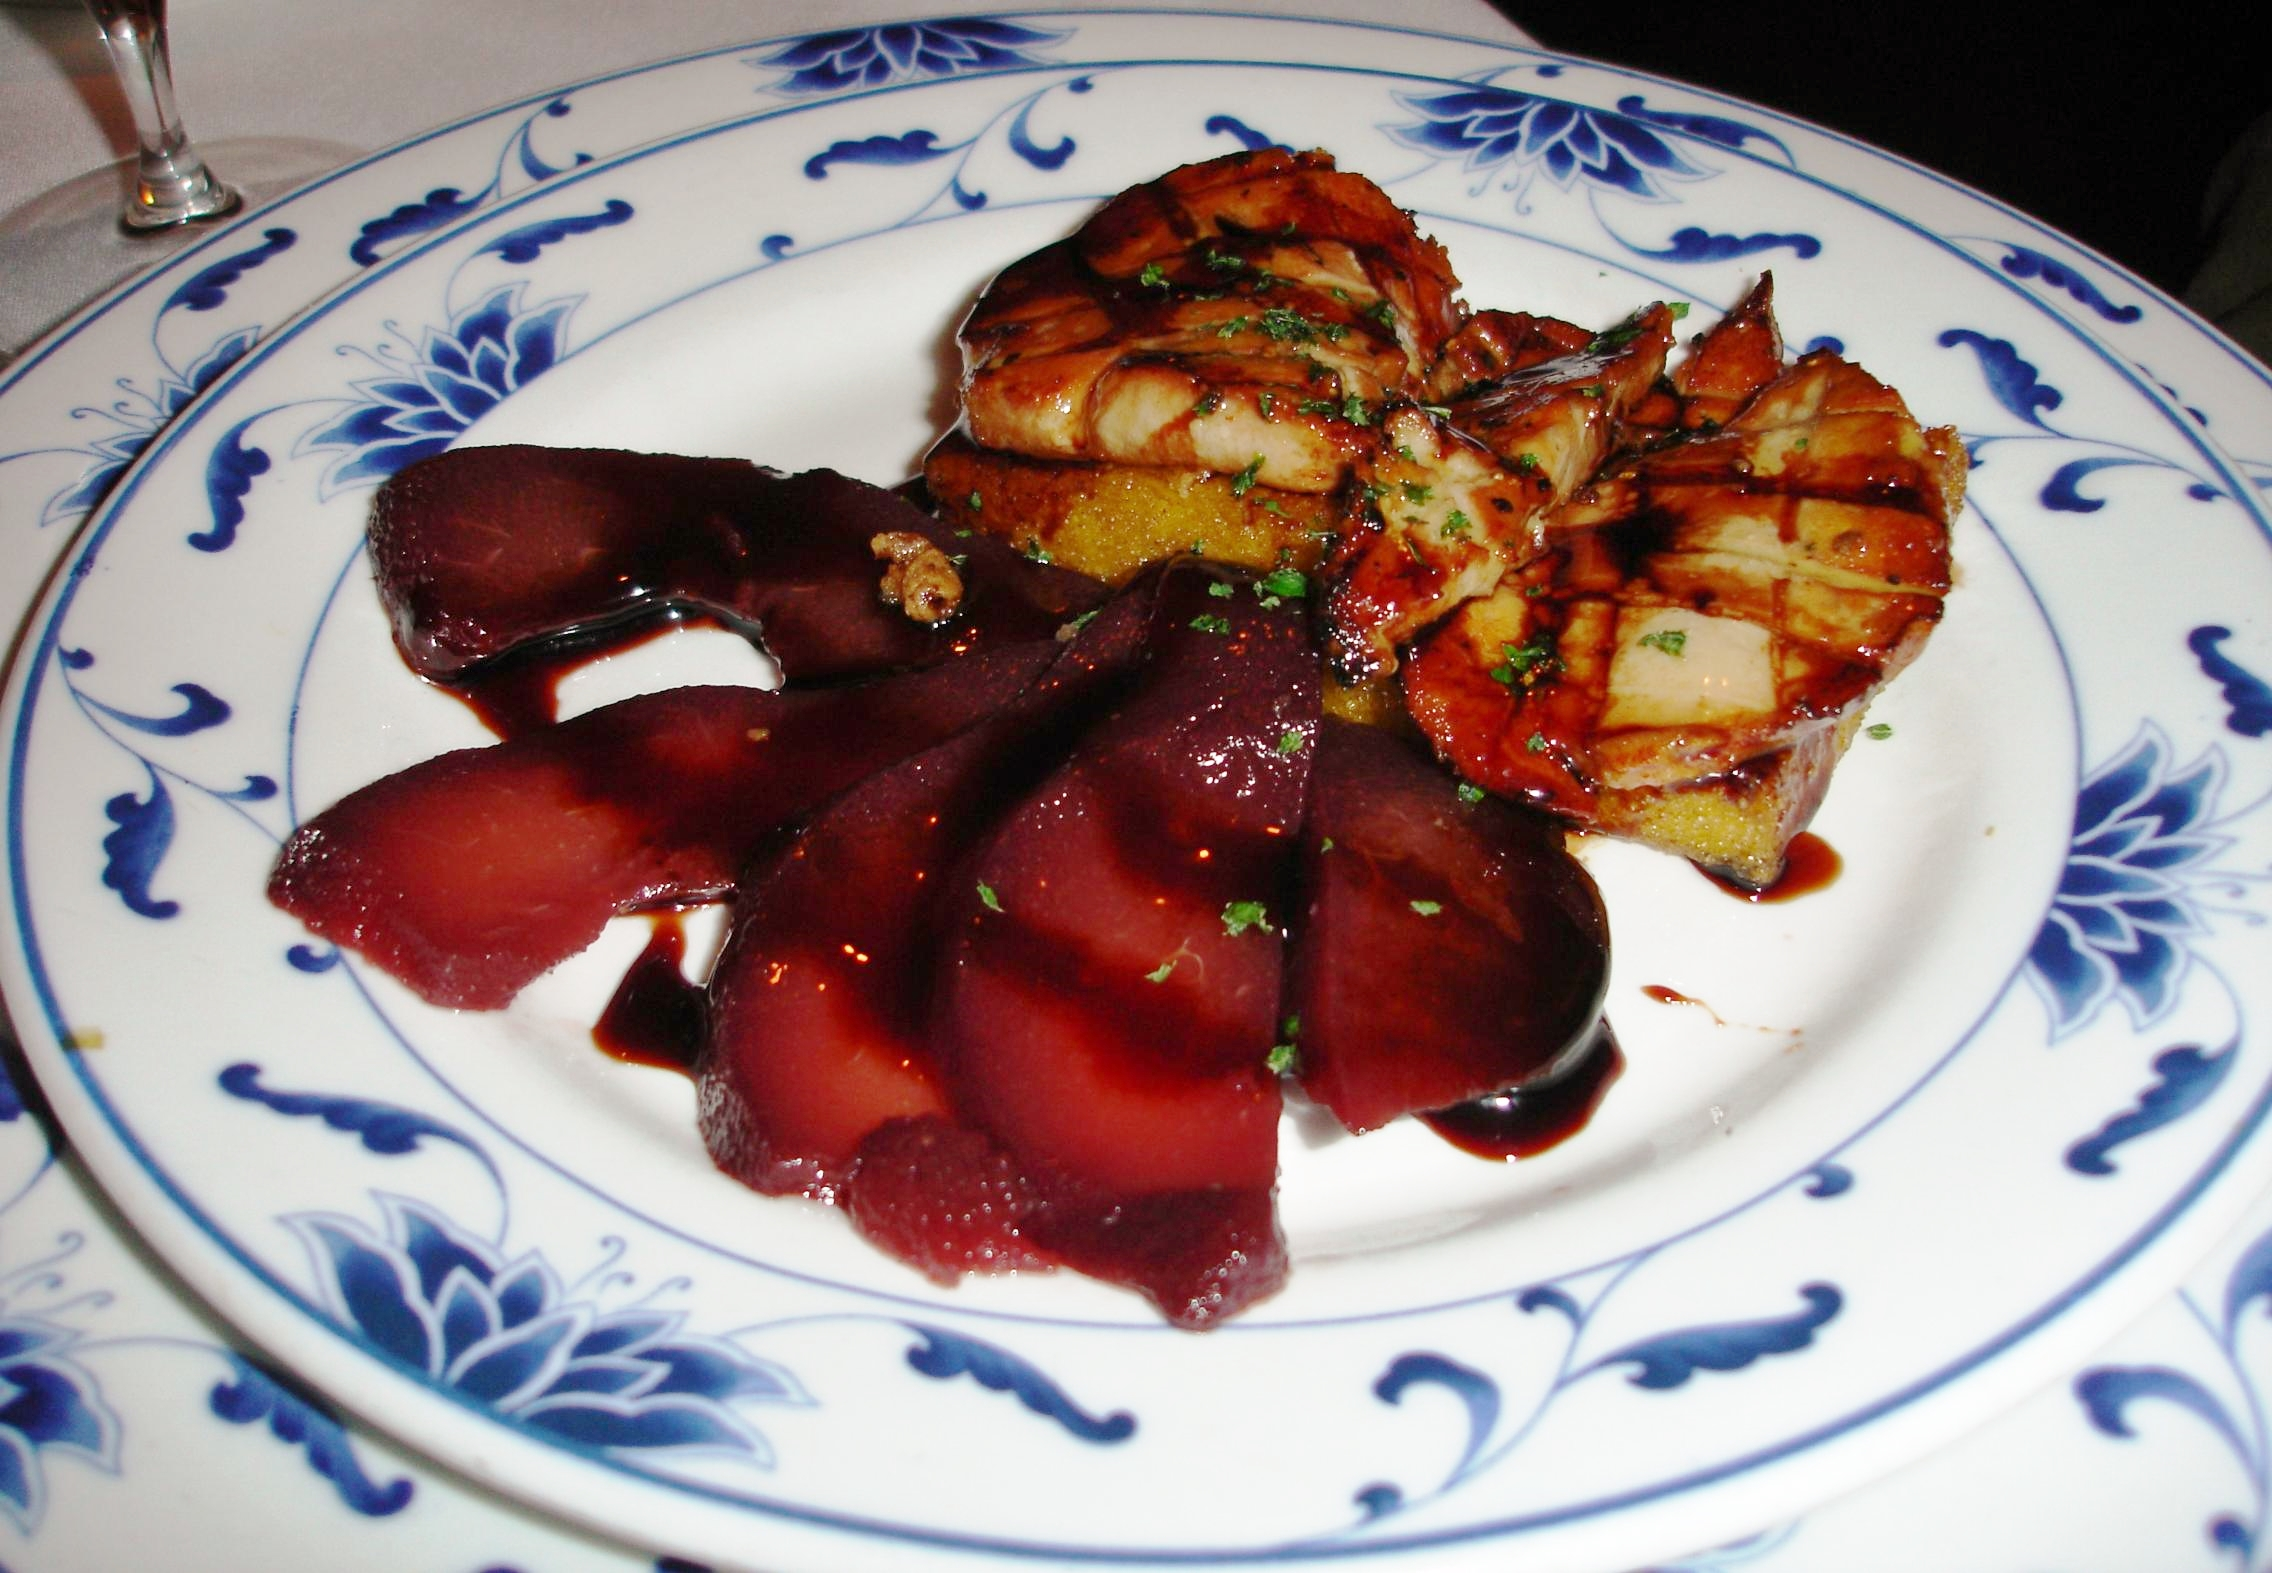 You can dine upscale on a dish of seared foie gras with fruit of the season which, during this fall visit, was wine-poached pears, or...